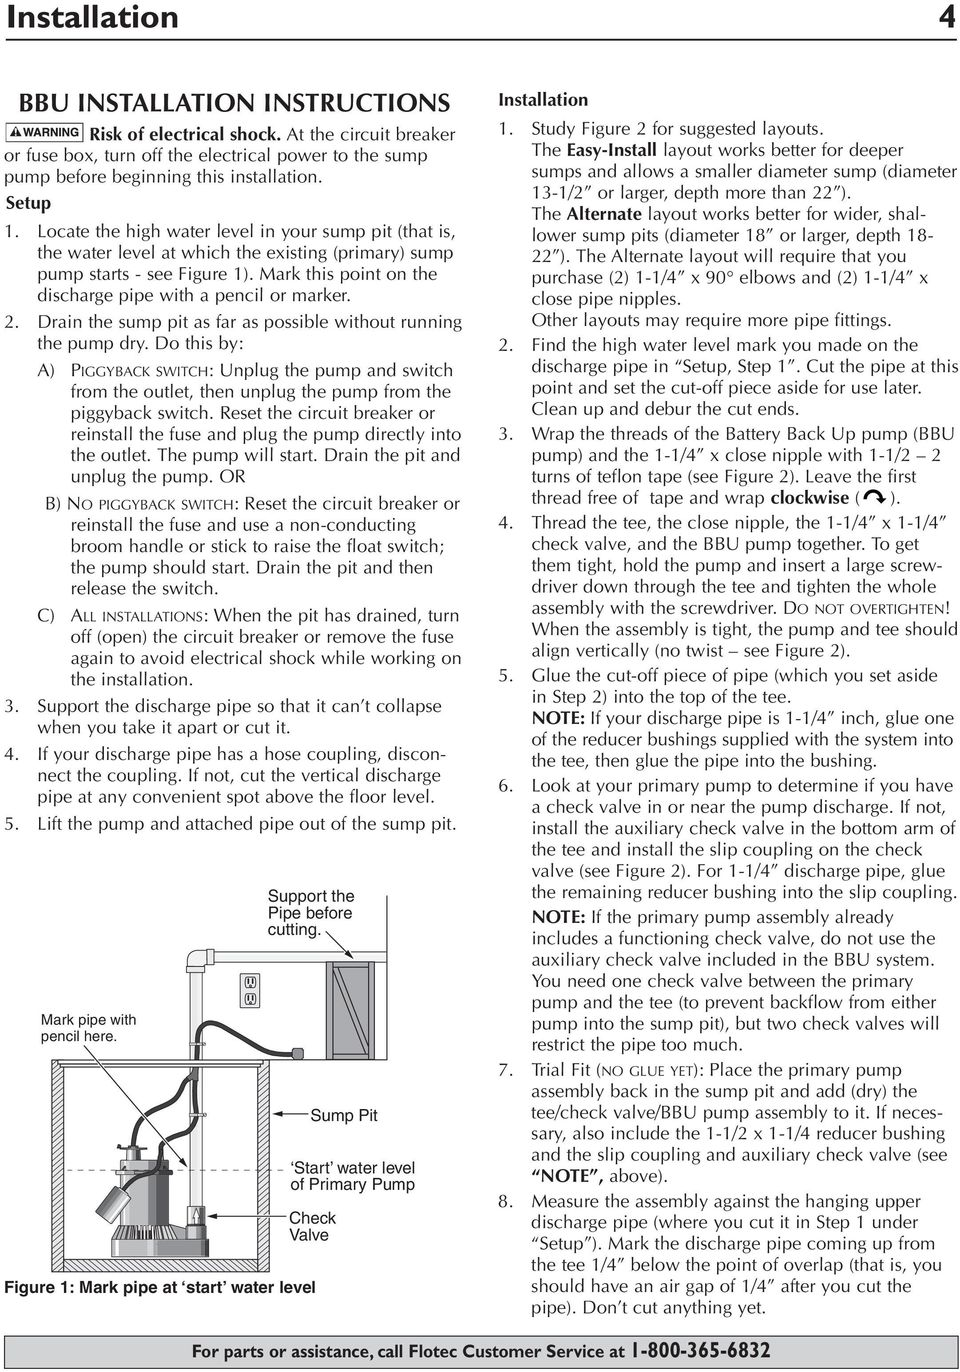 2. Drain the sump pit as far as possible without running the pump dry. Do this by: A) PIGGYBACK SWITCH: Unplug the pump and switch from the outlet, then unplug the pump from the piggyback switch.